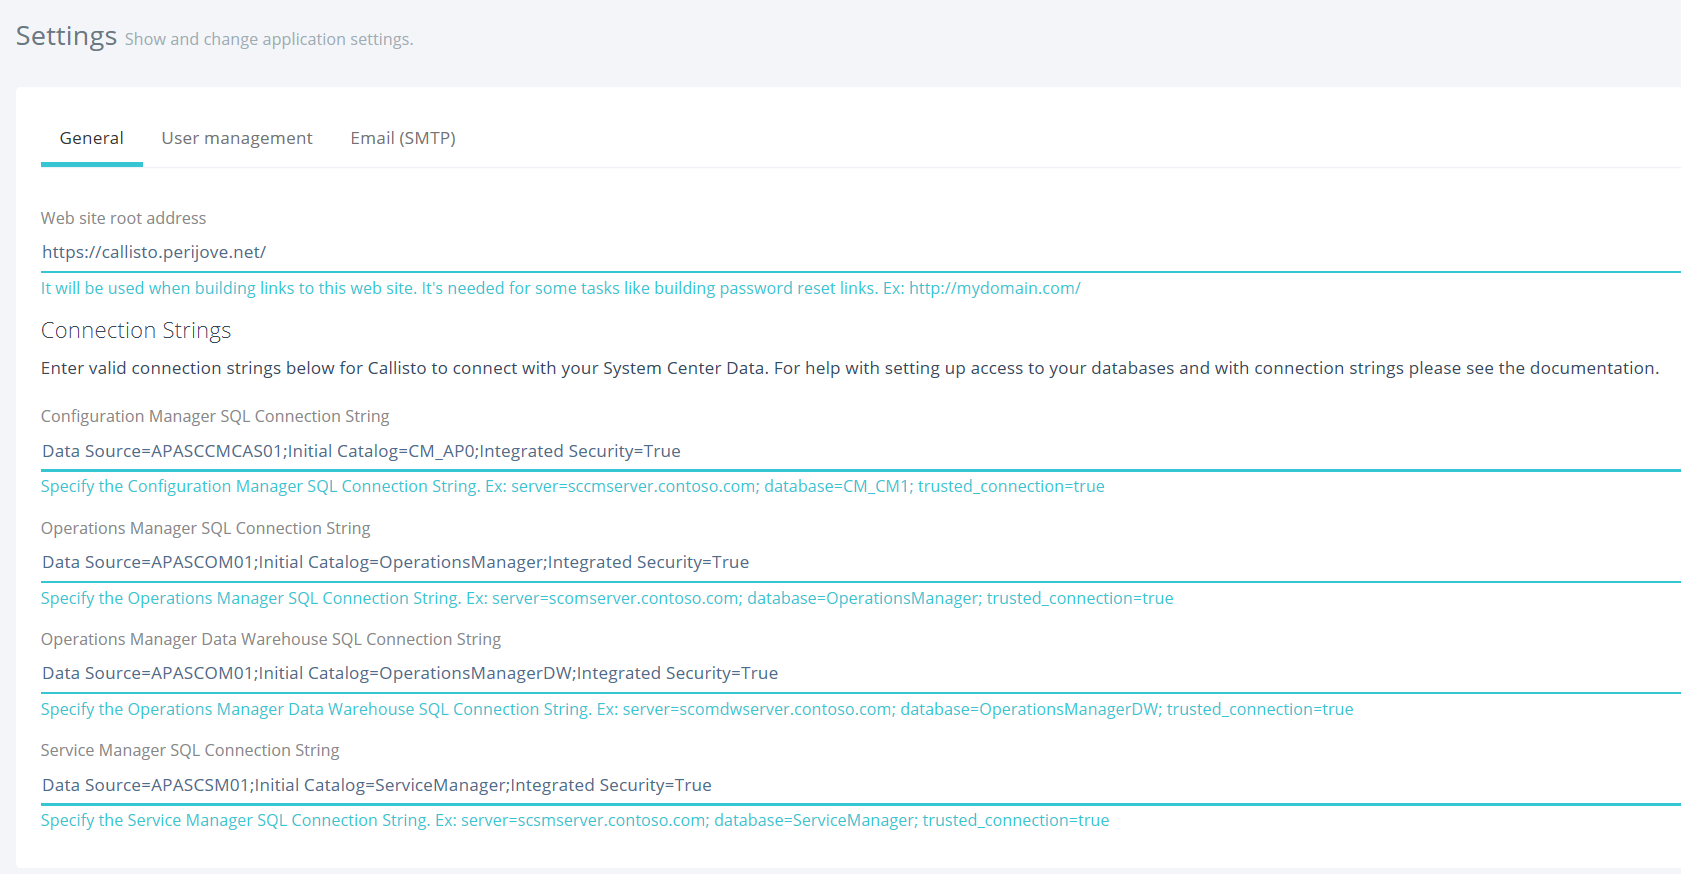 Setting Up Database Connections Apajove Level Security When The Connection Strings Are Correctly Added And Permissions Set As Required Top Callisto Dashboard Will Show Successful